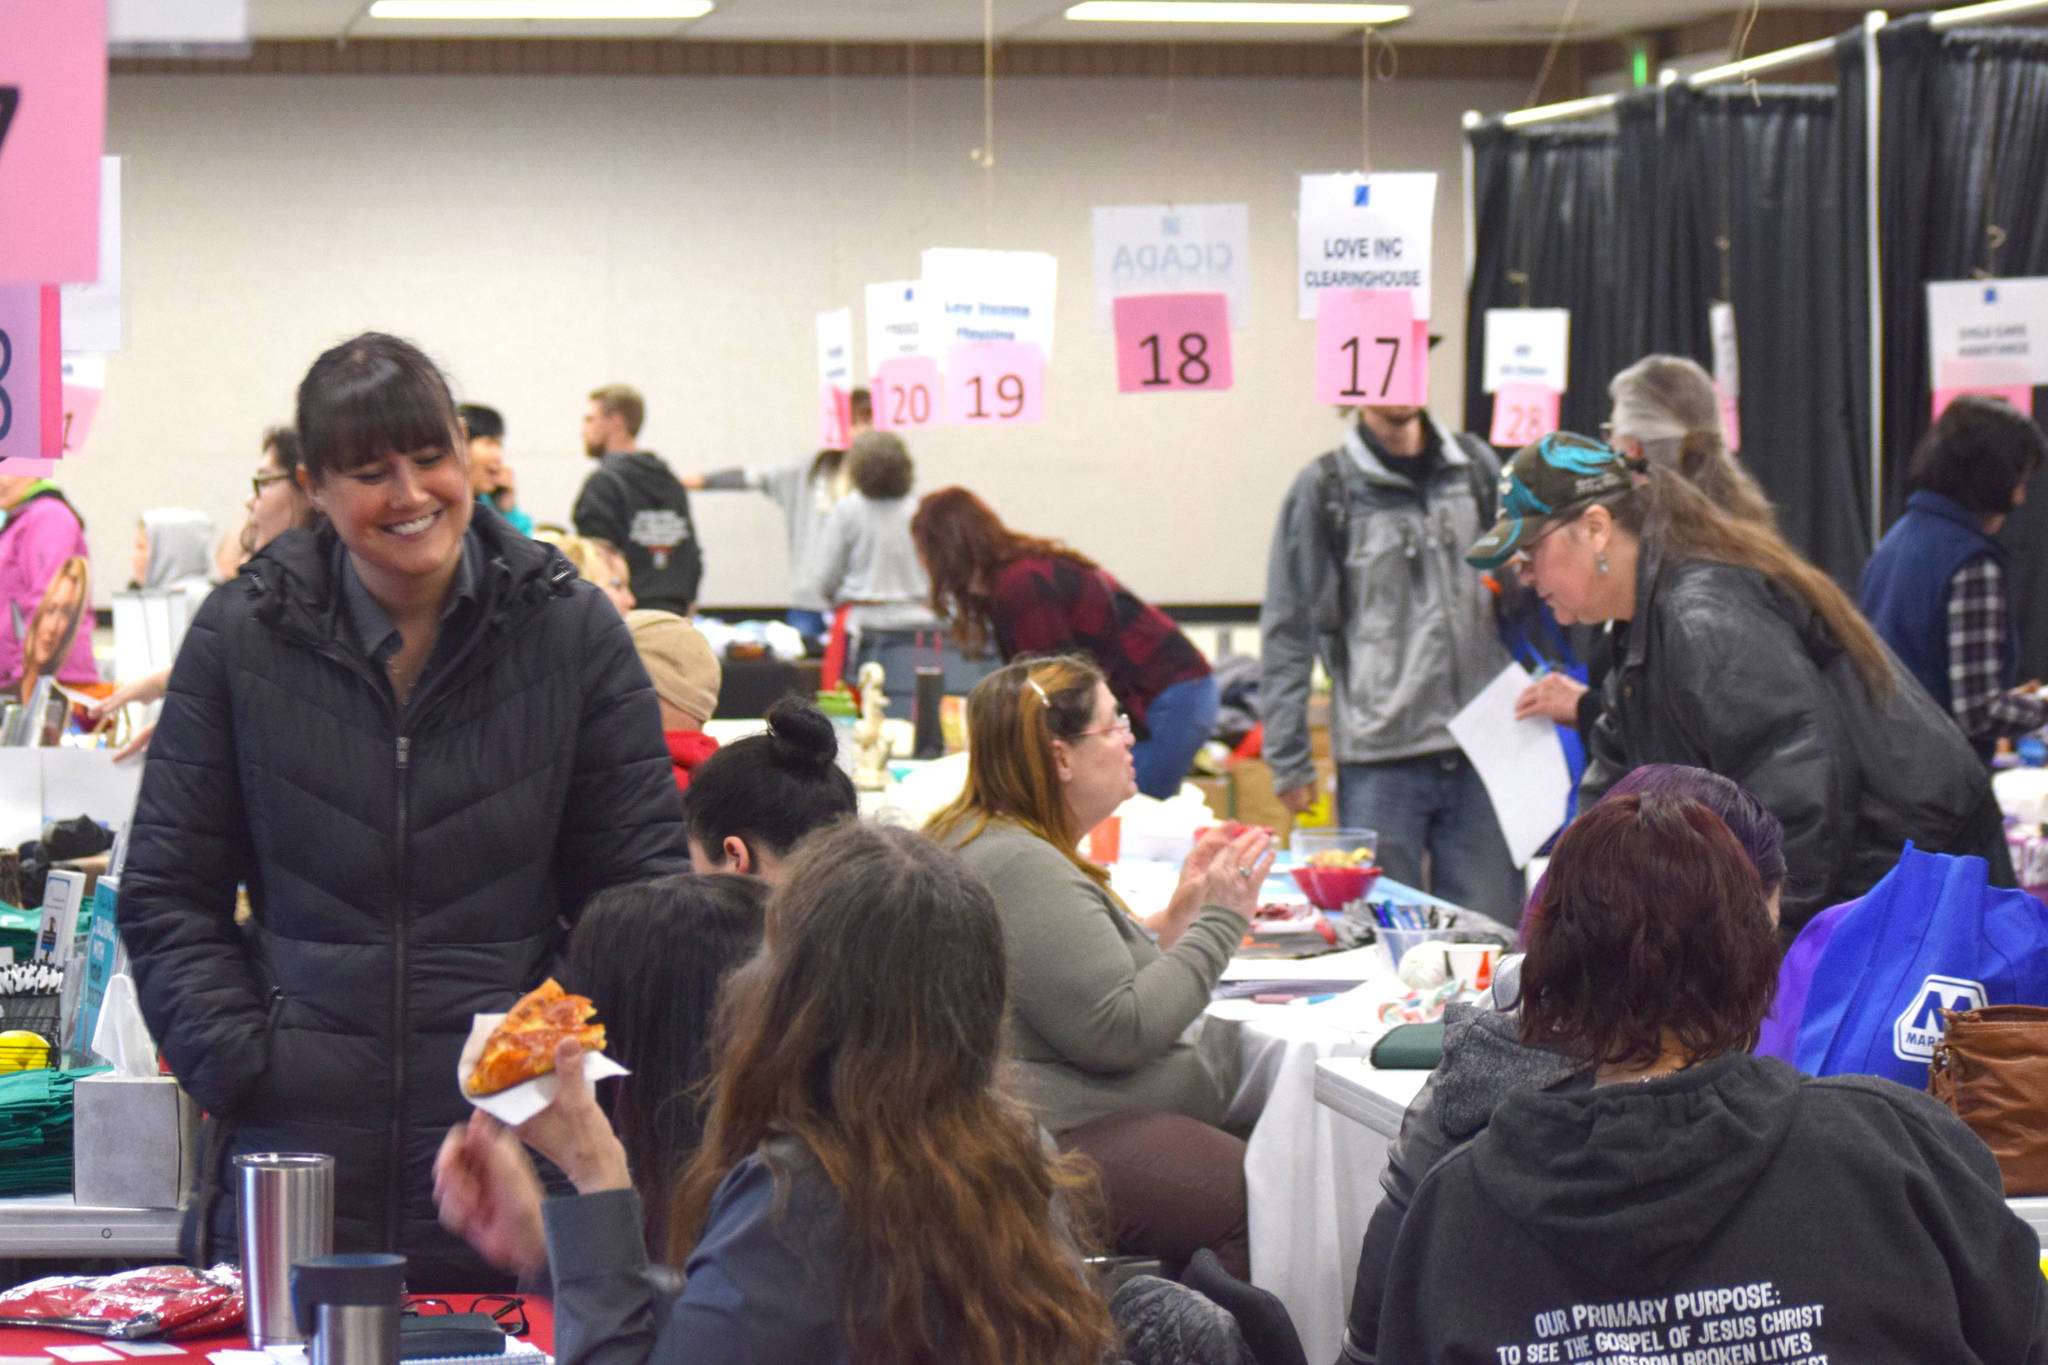 Project Homeless Connect organizers provide services on Jan. 23, 2019, in Soldotna, Alaska, during the annual outreach event. (Photo by Brian Mazurek/Clarion file)